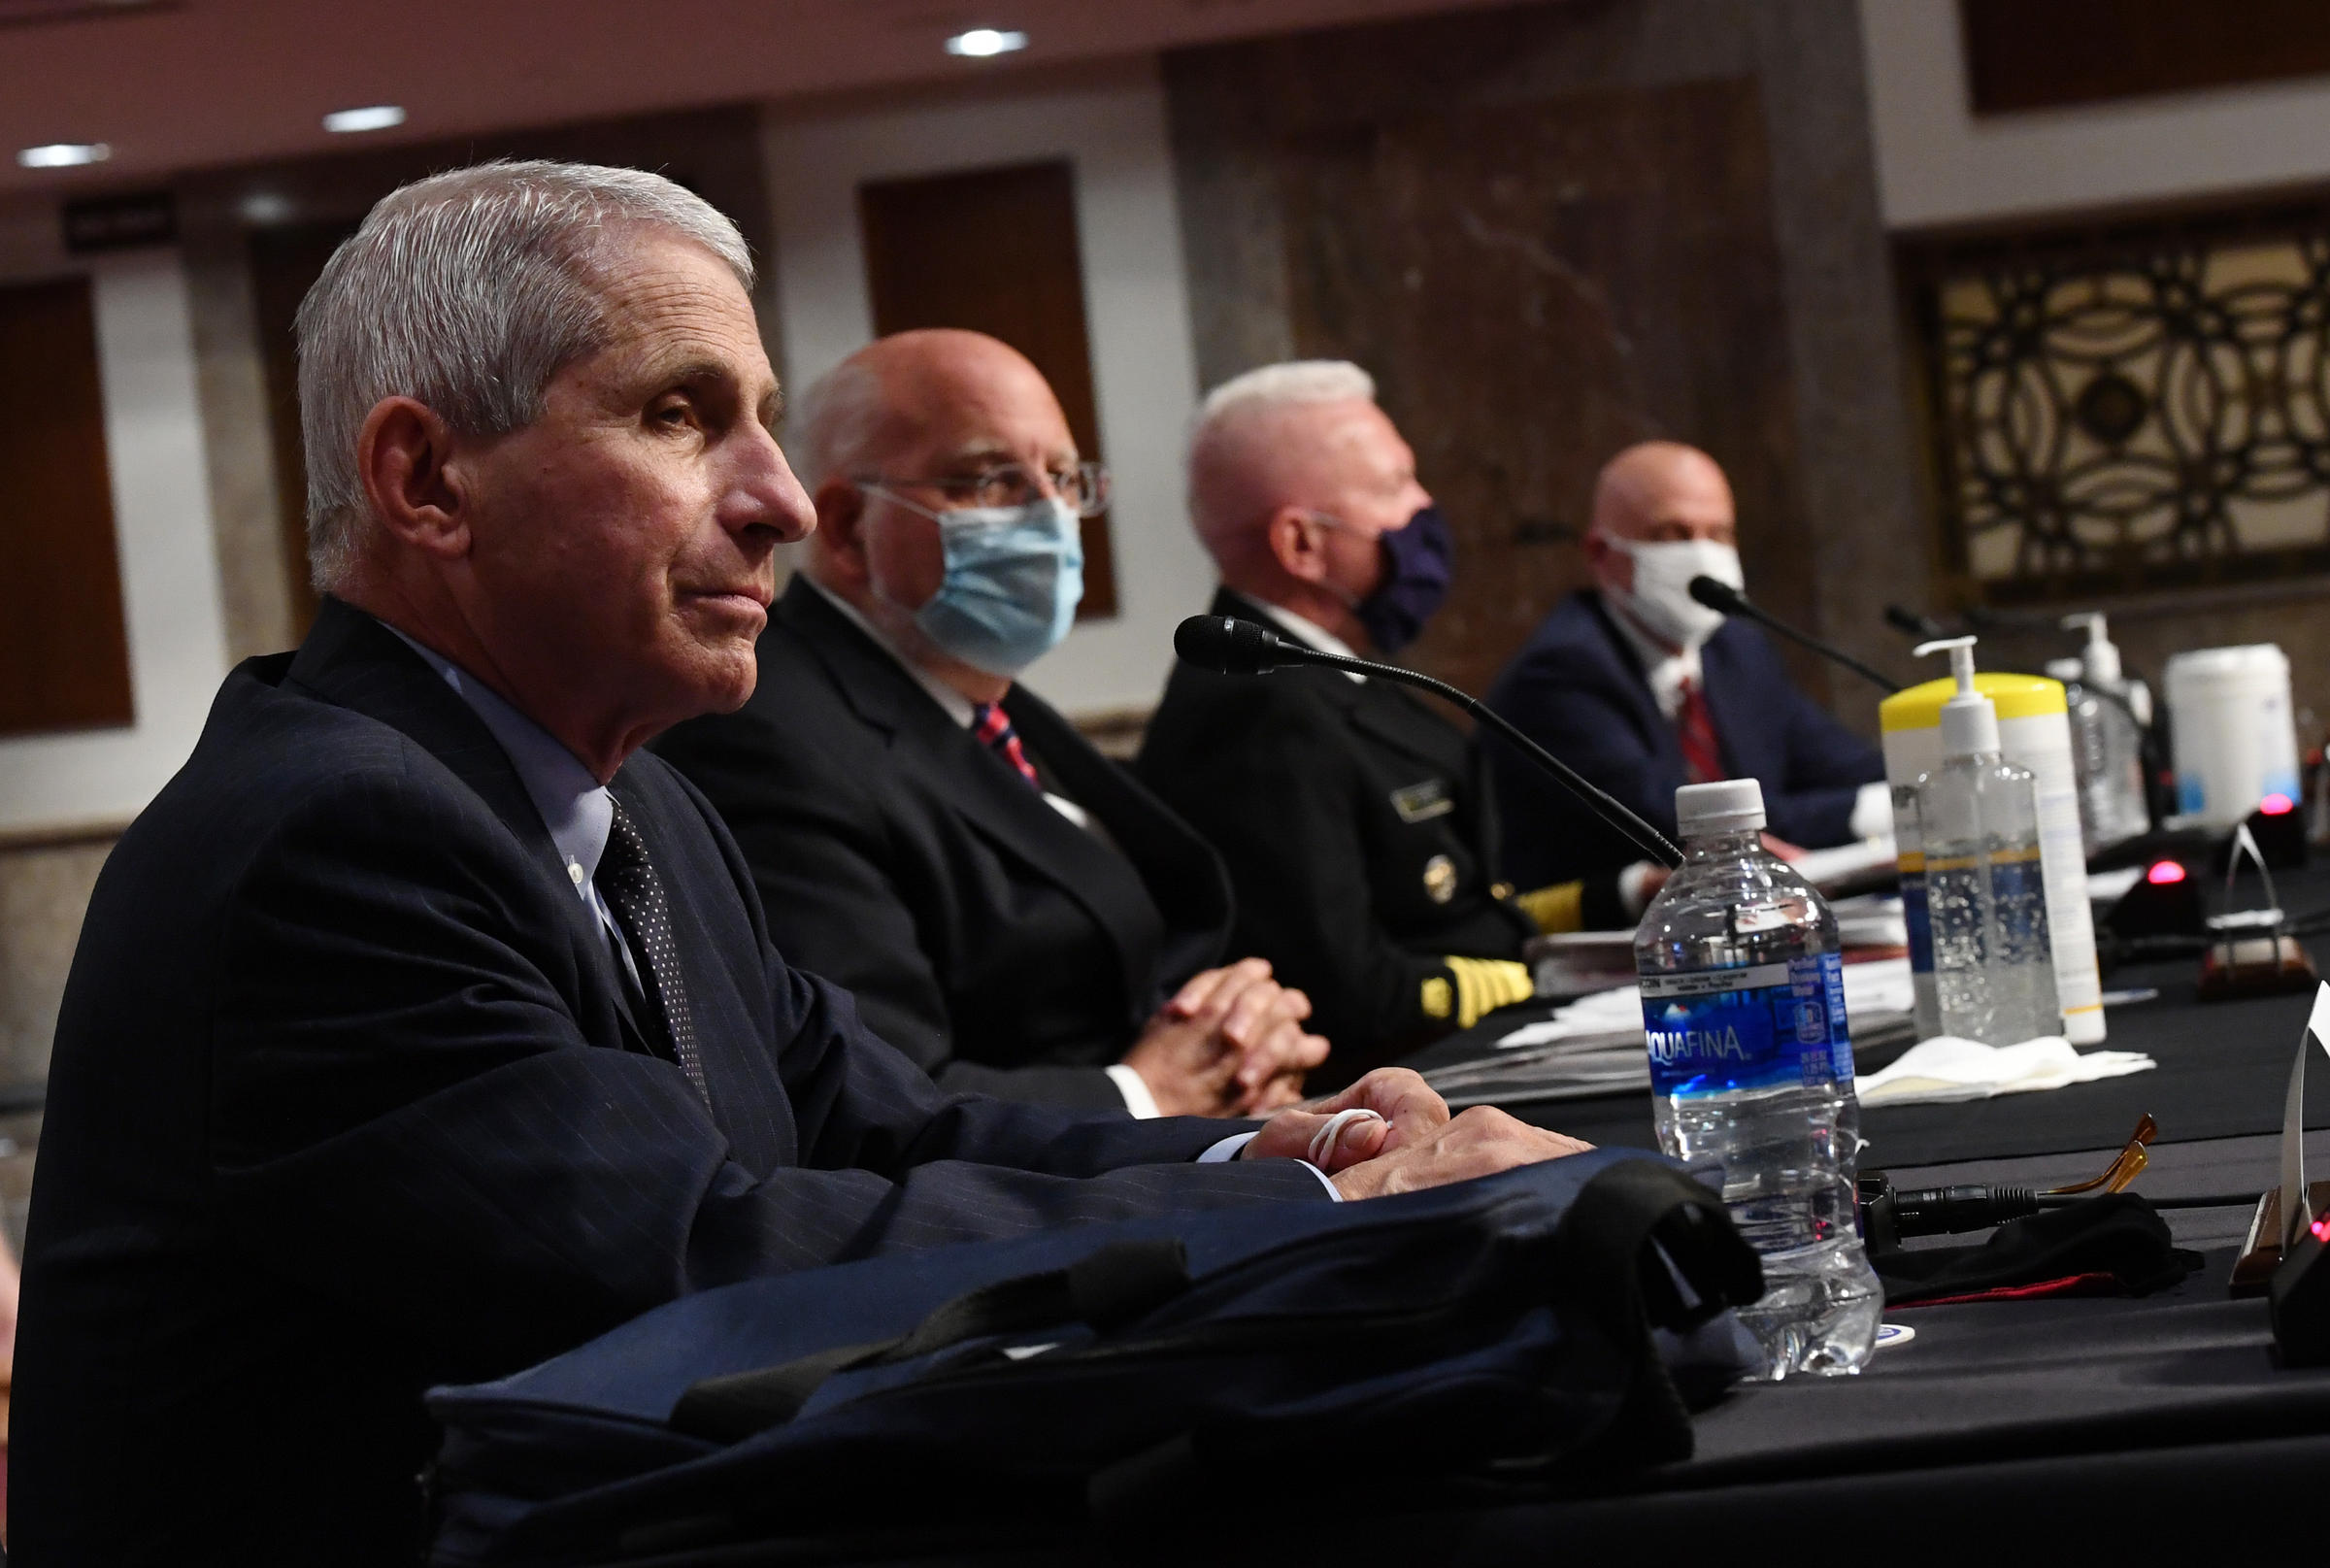 United States  could reach 100,000 new virus cases a day, Fauci says